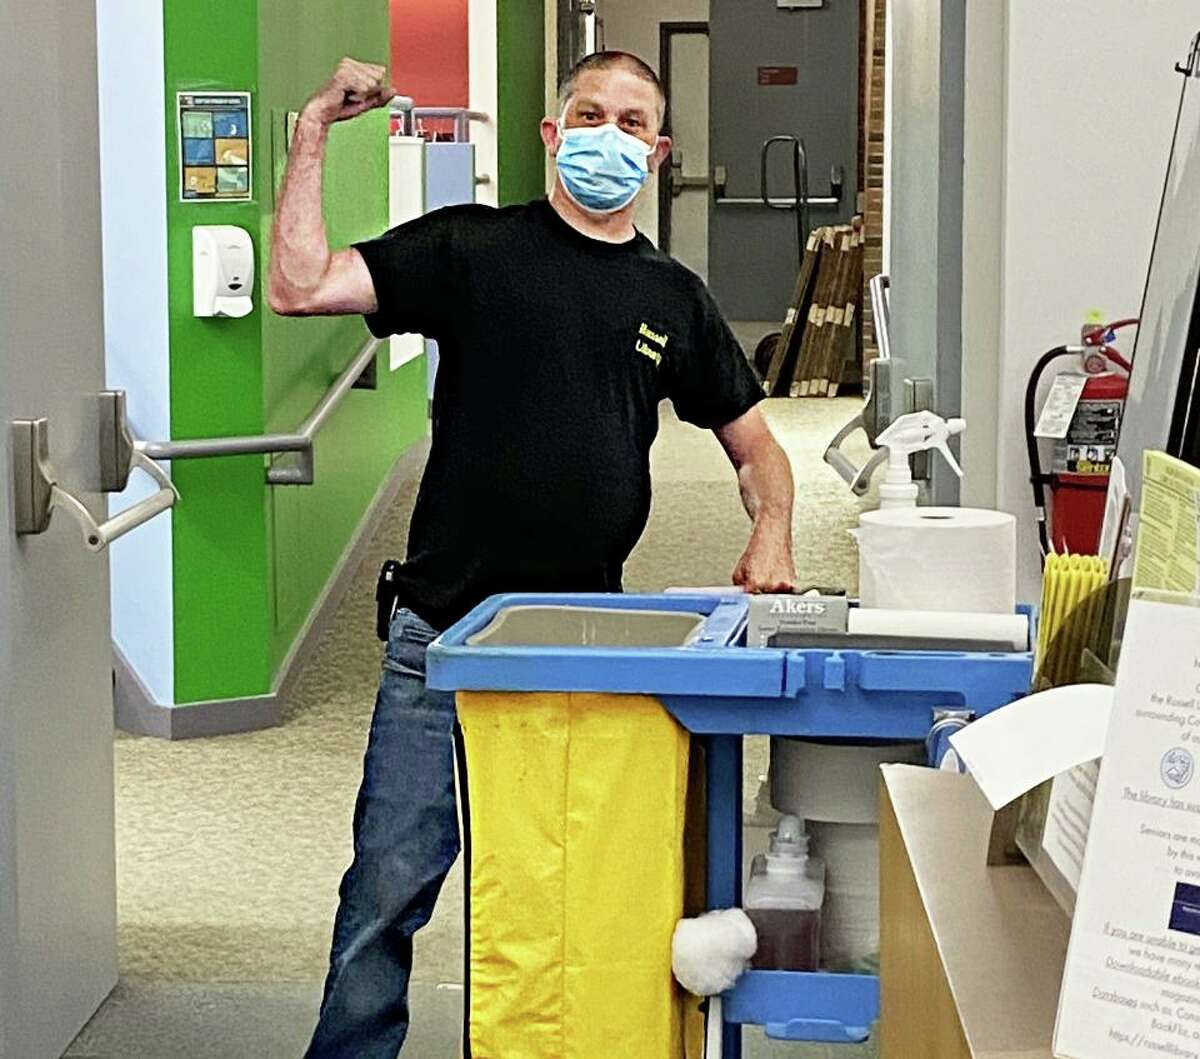 Russell Library custodian Jon Miller cleans the facility in preparation for the eventual return of patrons once the library is deemed safe to reopen amid the COVID-19 outbreak.